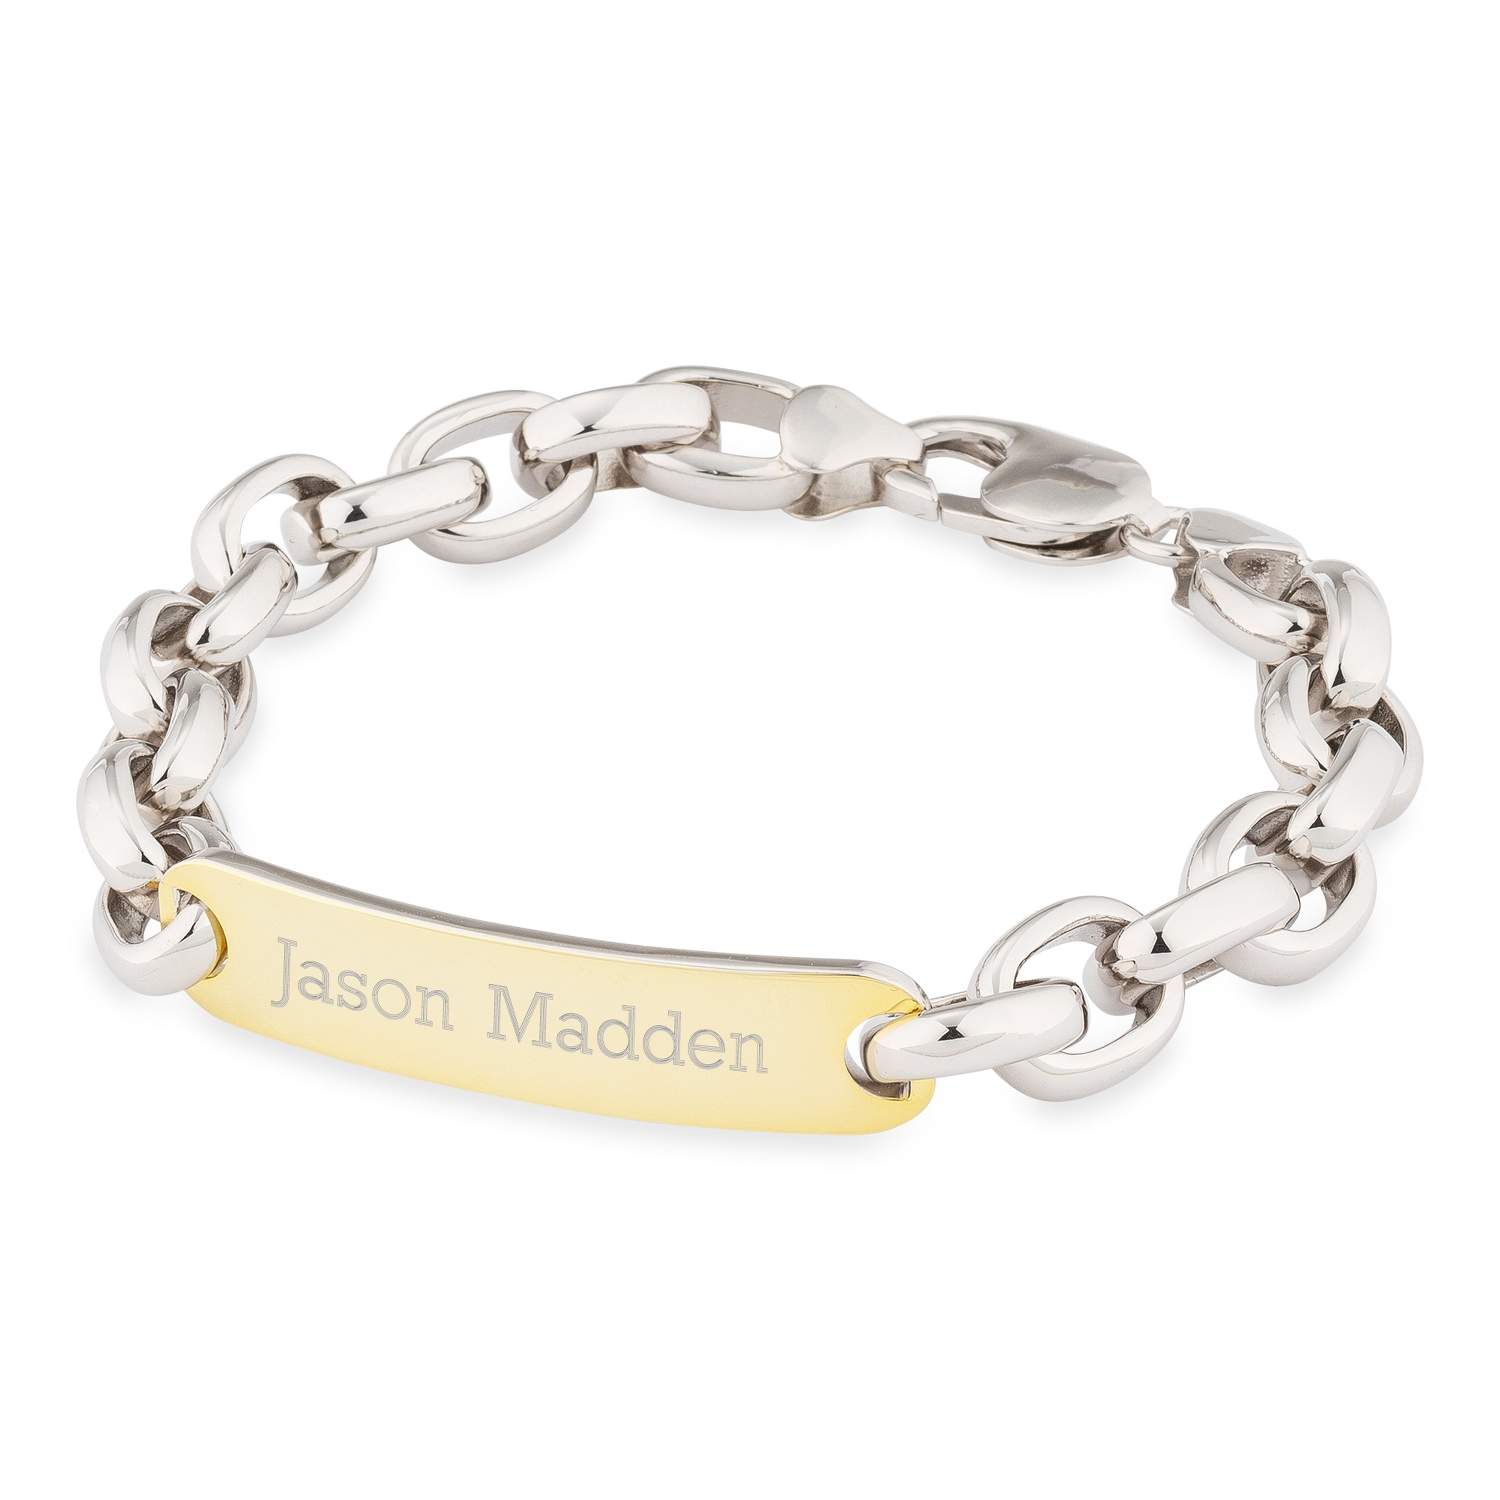 c9ffe6c2f9877 Mens Sterling Silver Link Gold Accent ID Bracelet